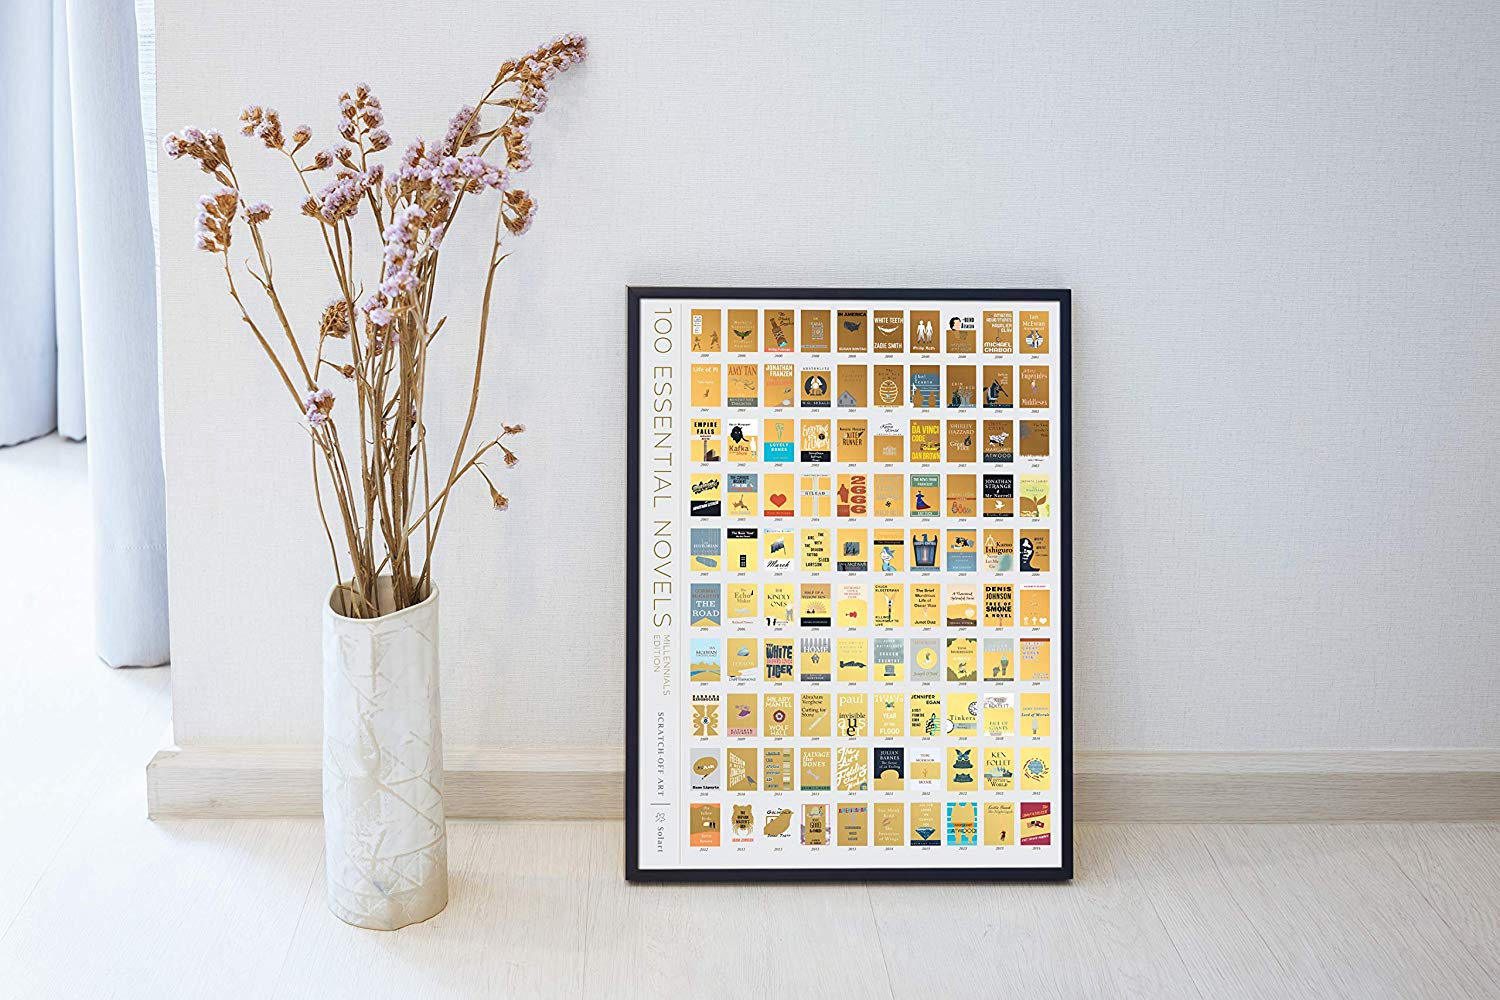 For your favorite book-worm:  a scratch-off book club poster. This poster makes great decor and serves a double purpose, a bucket list of books for the avid reader in your life.   //source